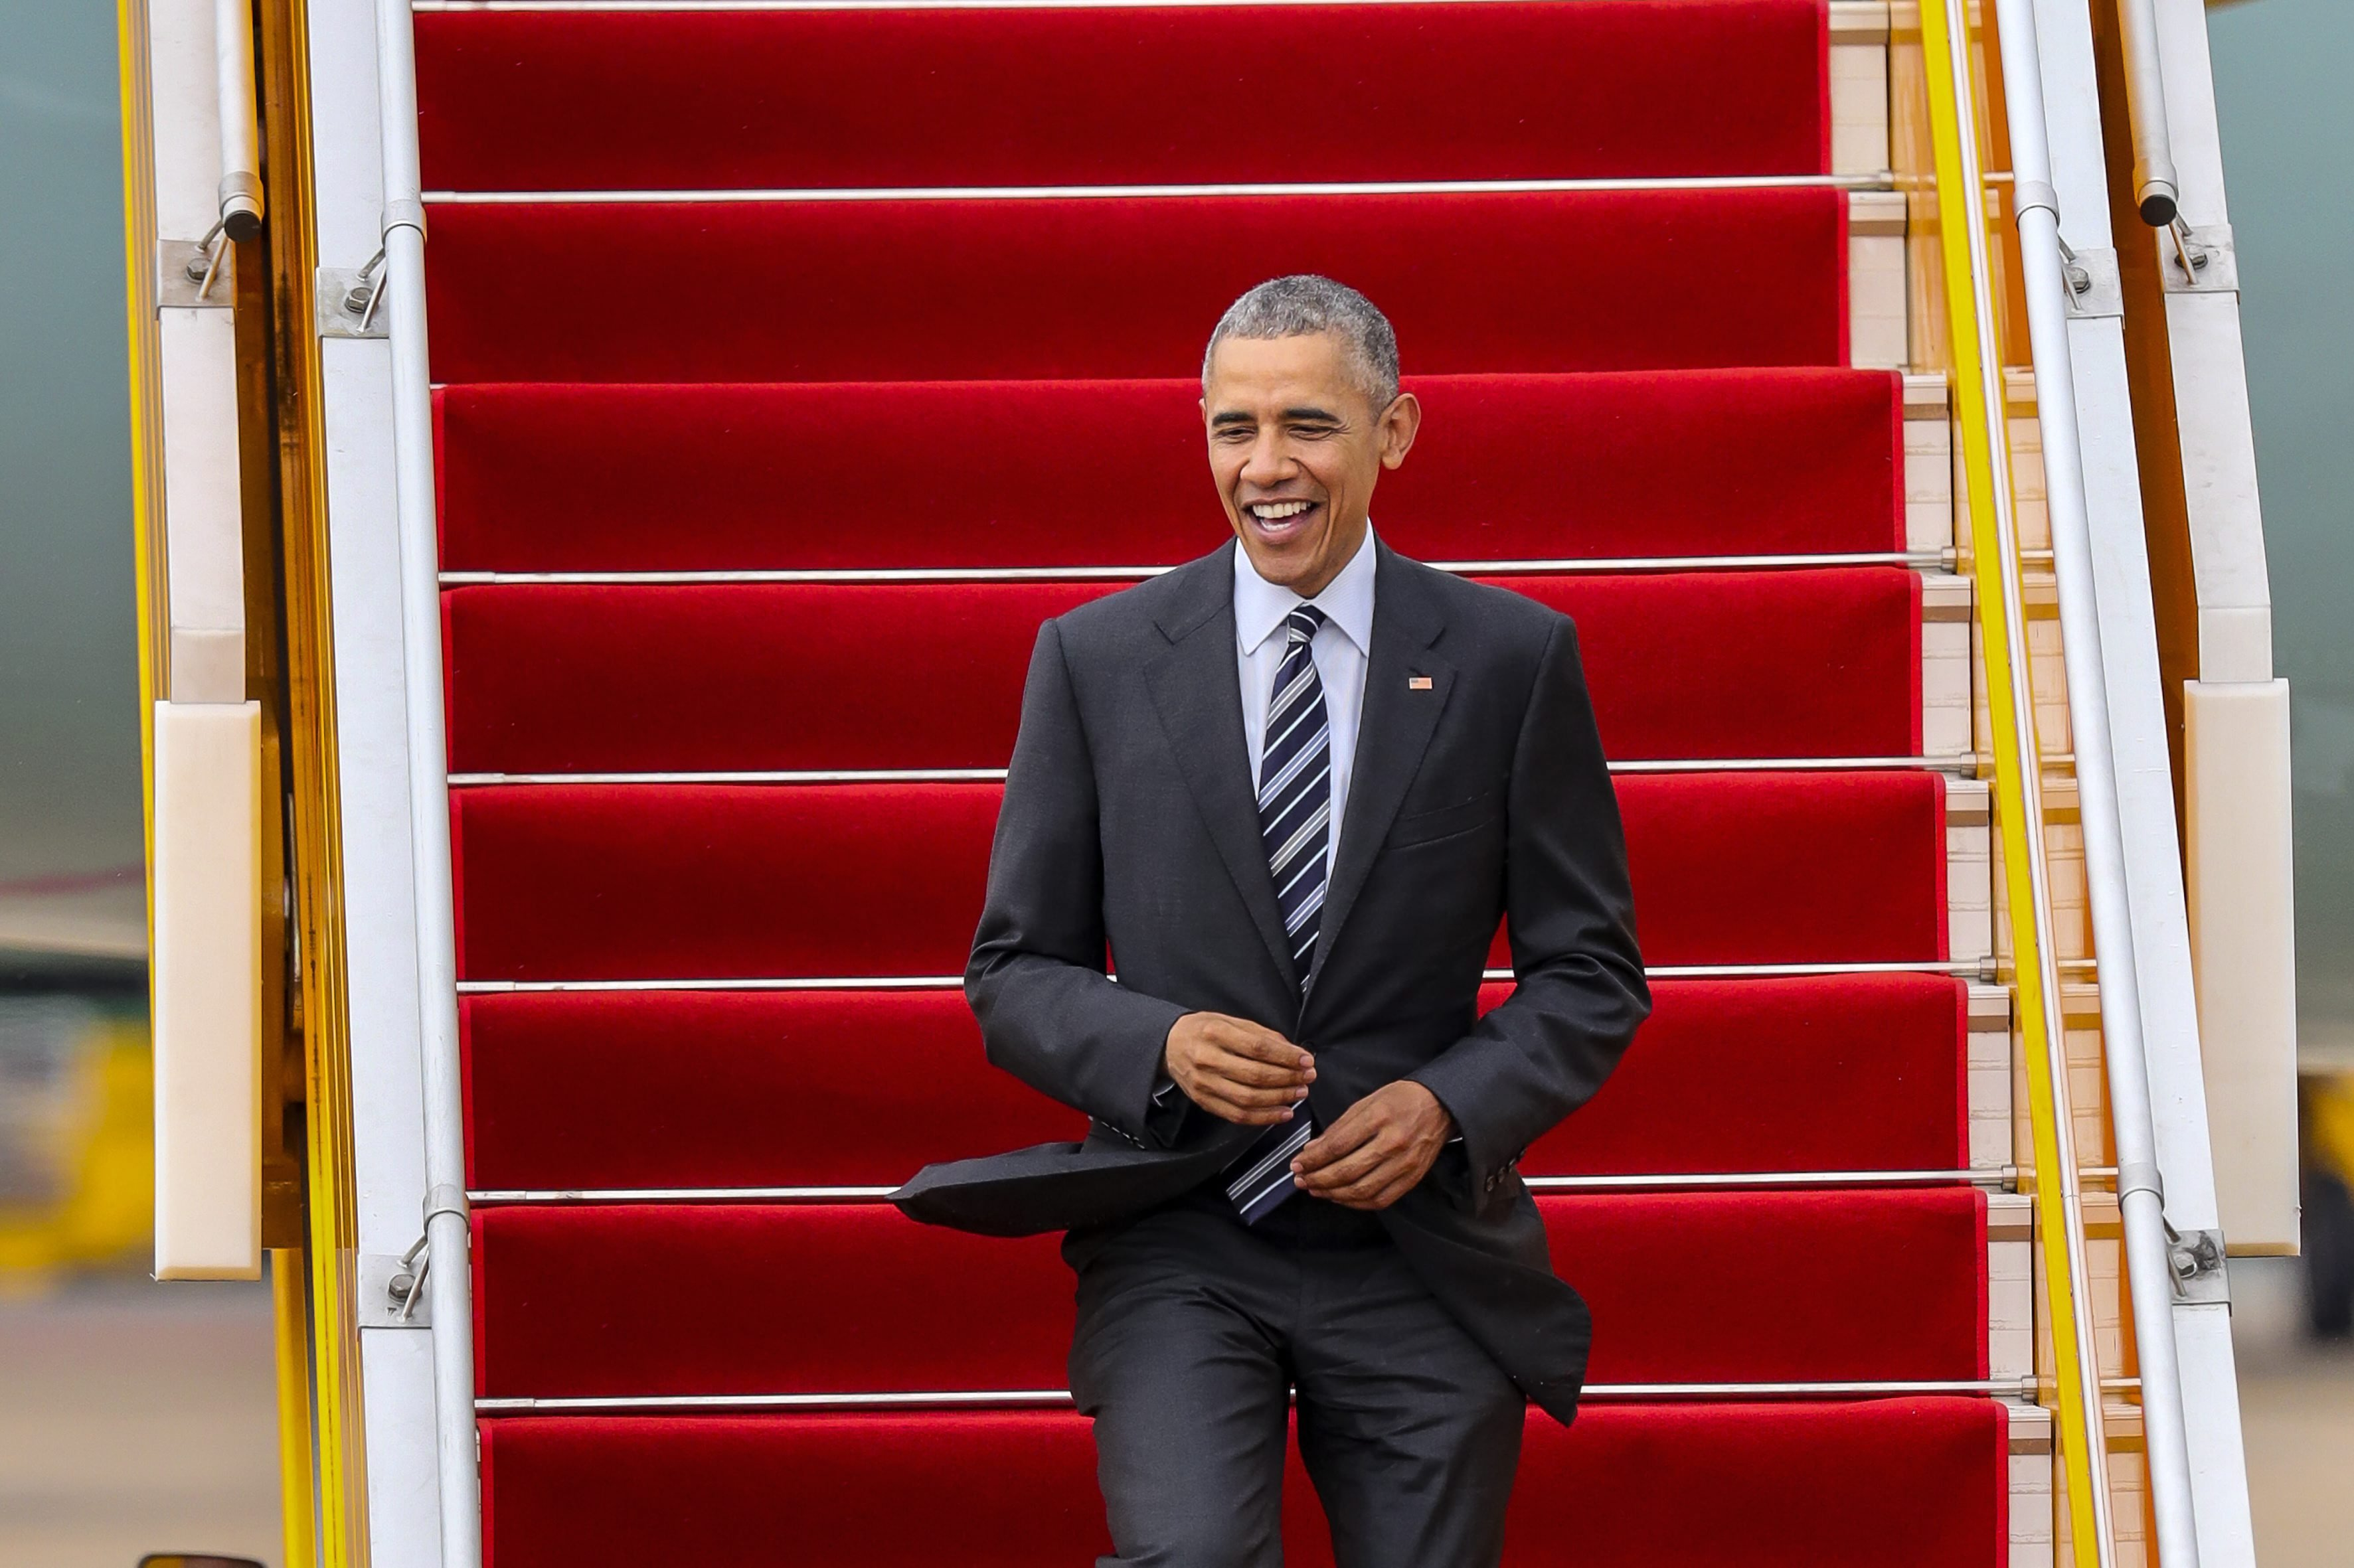 President Barack Obama disembarks Air Force One after landing at Tan Son Nhat airport in Ho Chi Minh City, Vietnam, May 24, 2016.